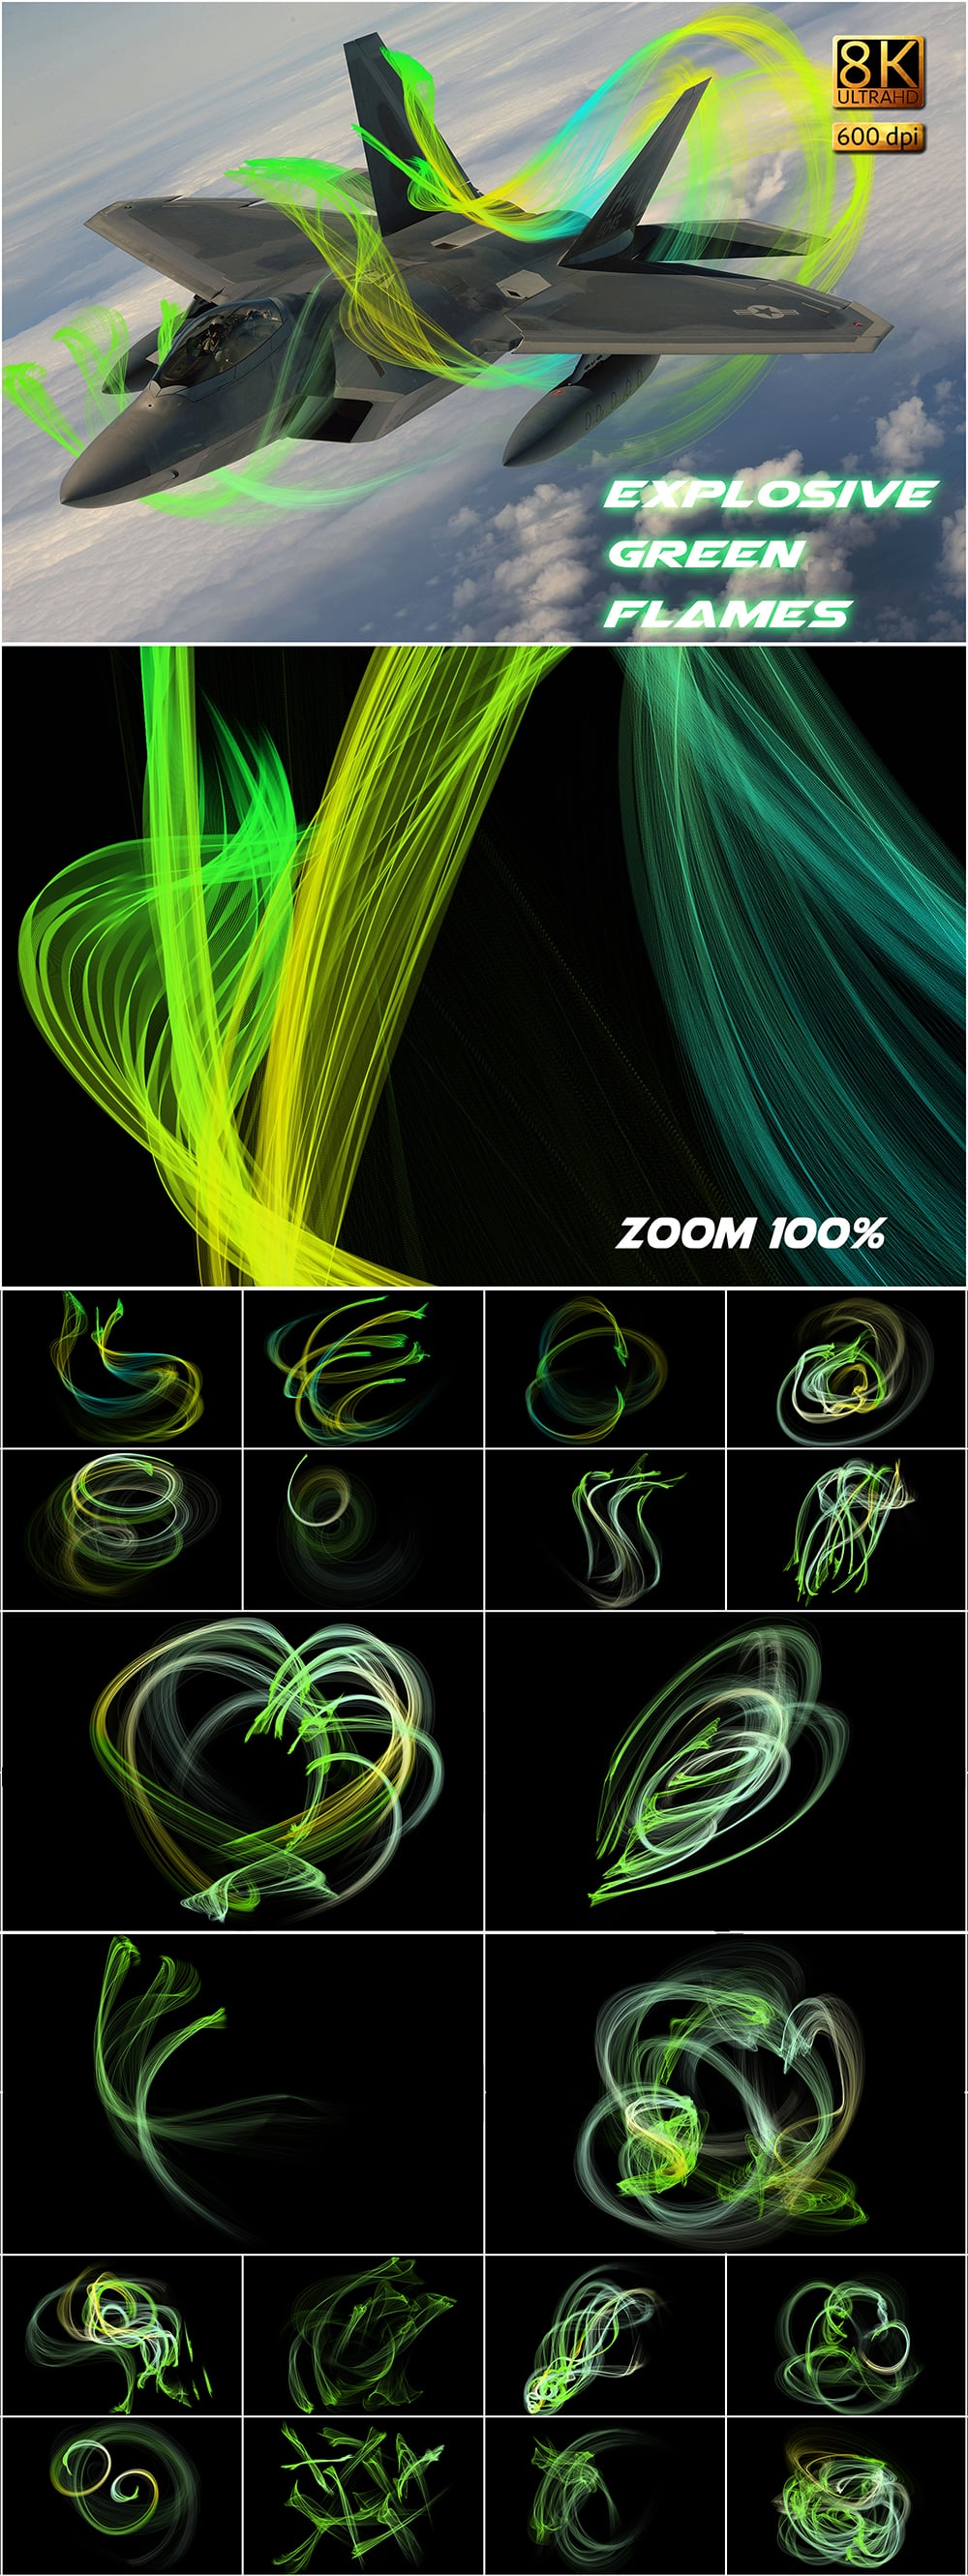 120 Professional Overlays with Extended license - Explosive Green Flames